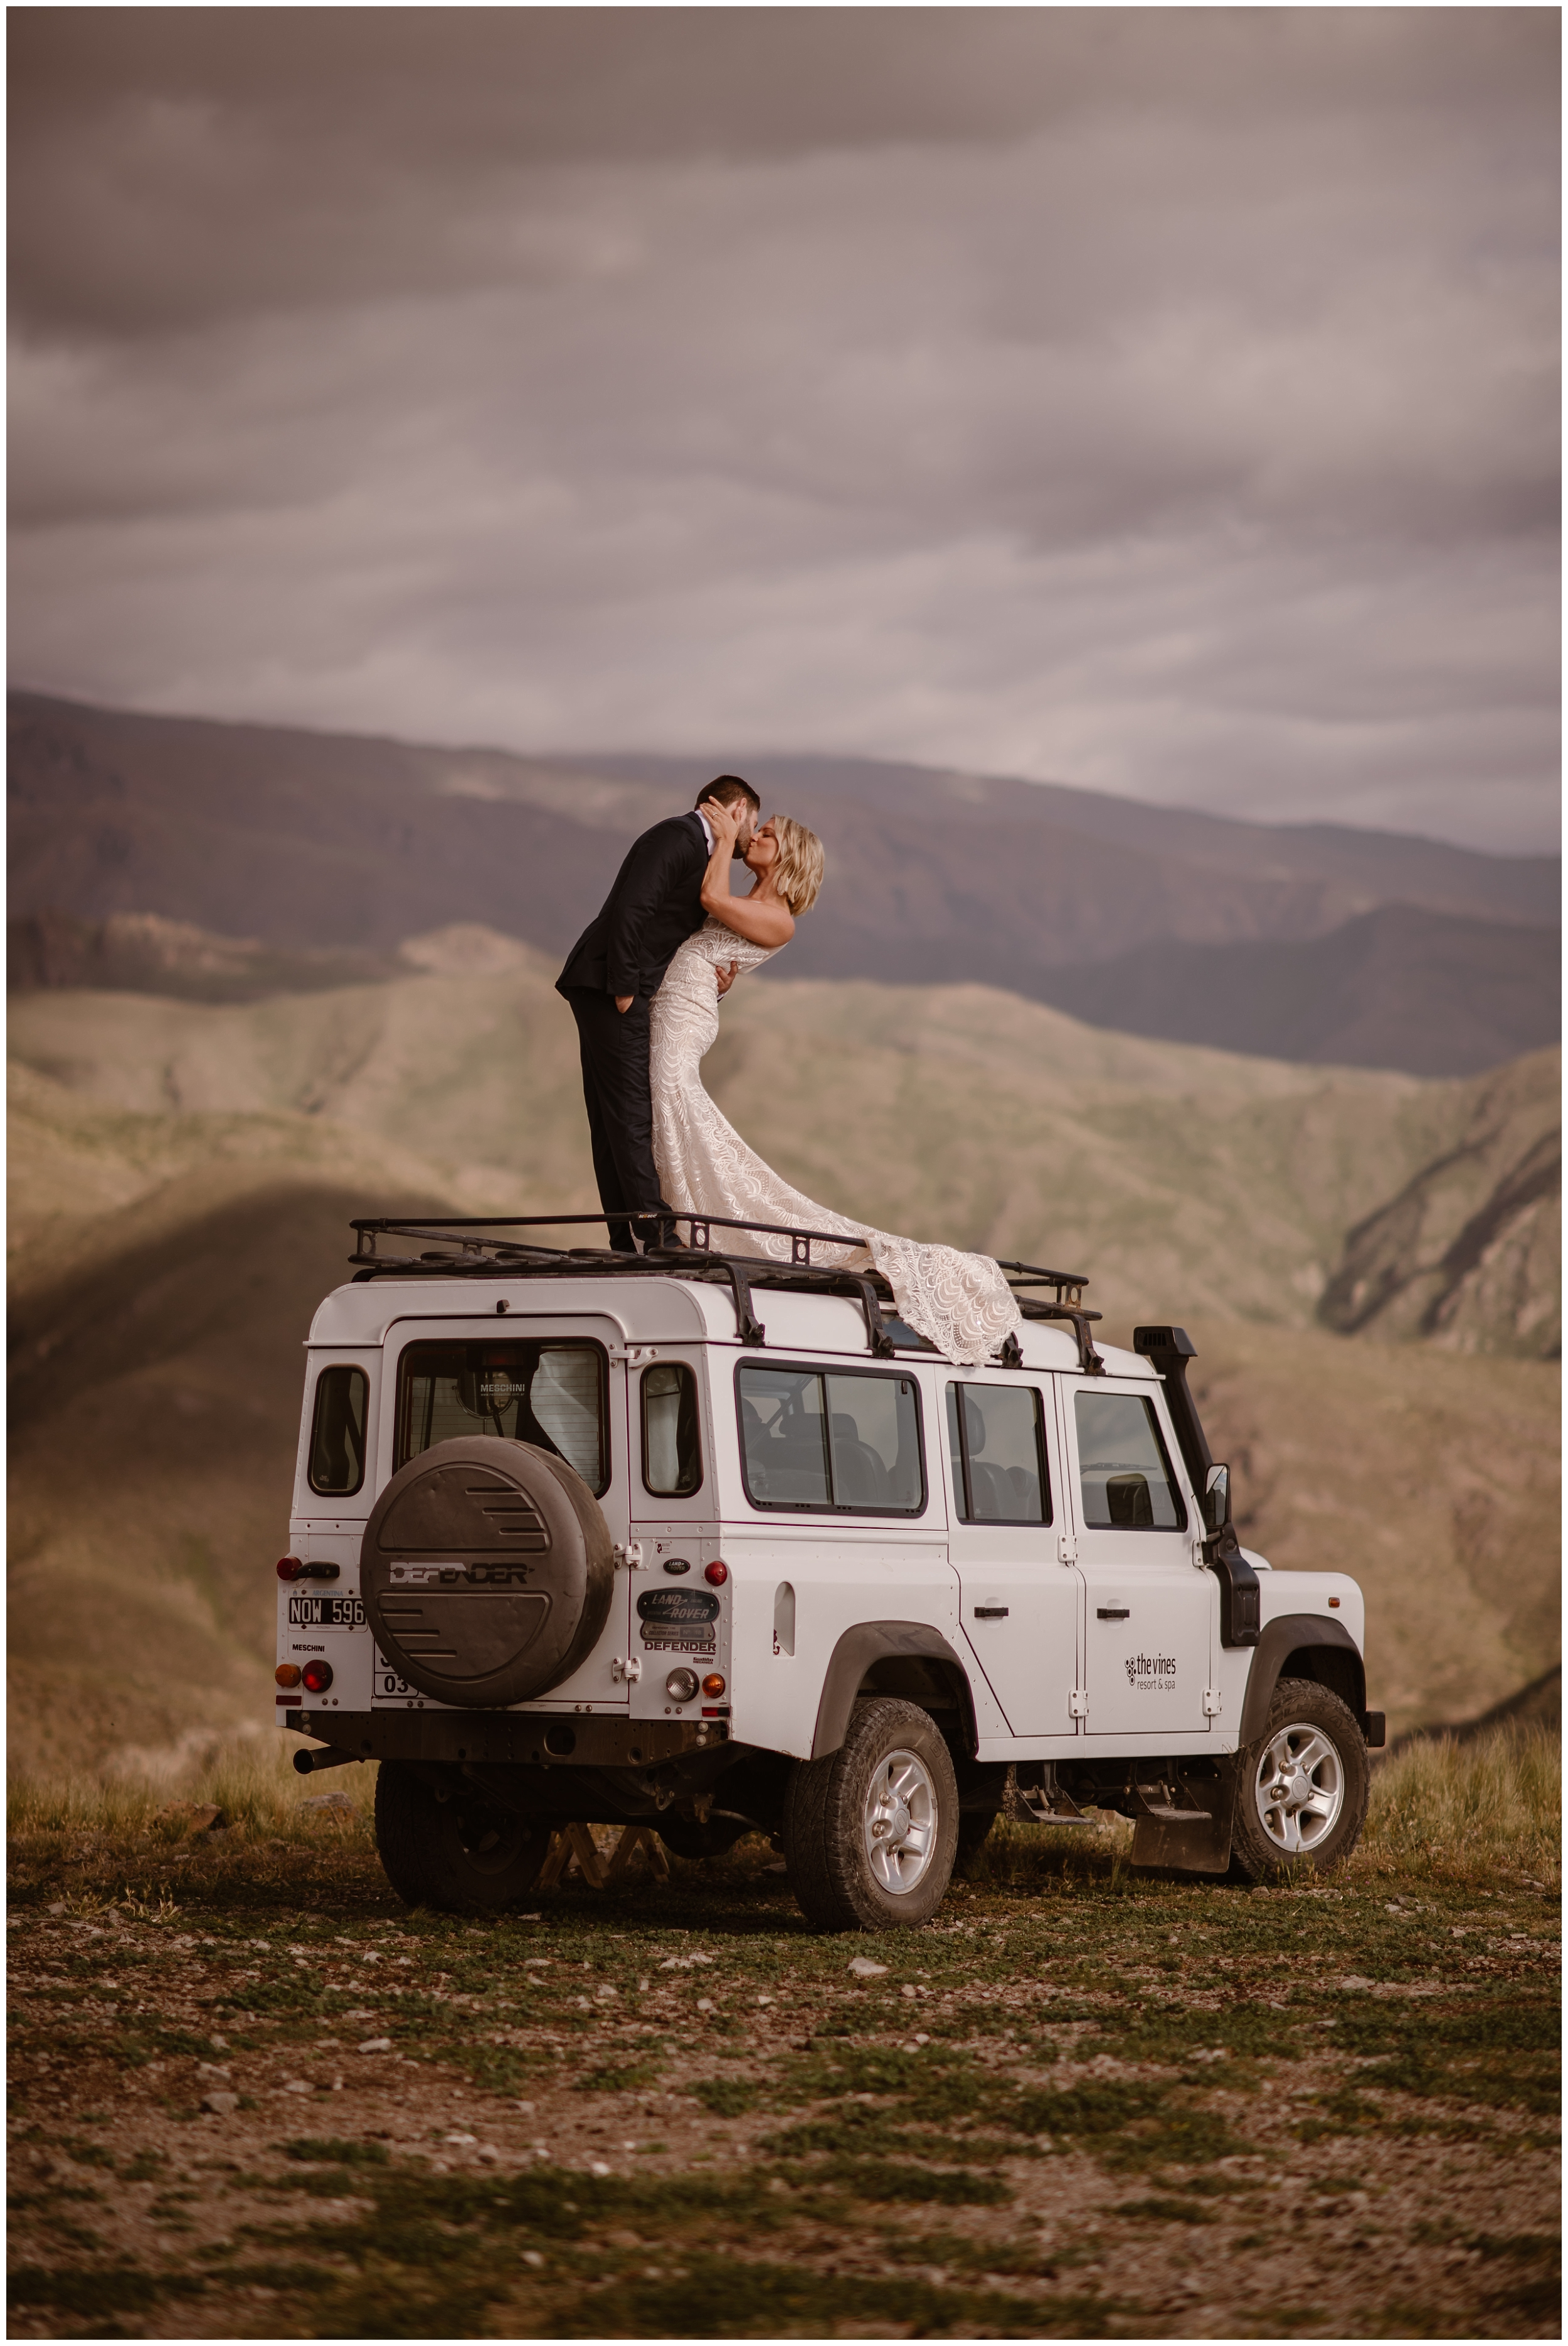 A bride and groom hold each other close and kiss after their elopement ceremony in Iceland. A small simple wedding was exactly what this couple wanted, and having it in Iceland was a way they incorporated their unique eloping ideas into their big day. These adventure elopement photos were captured by elopement wedding photographer Adventure Instead.